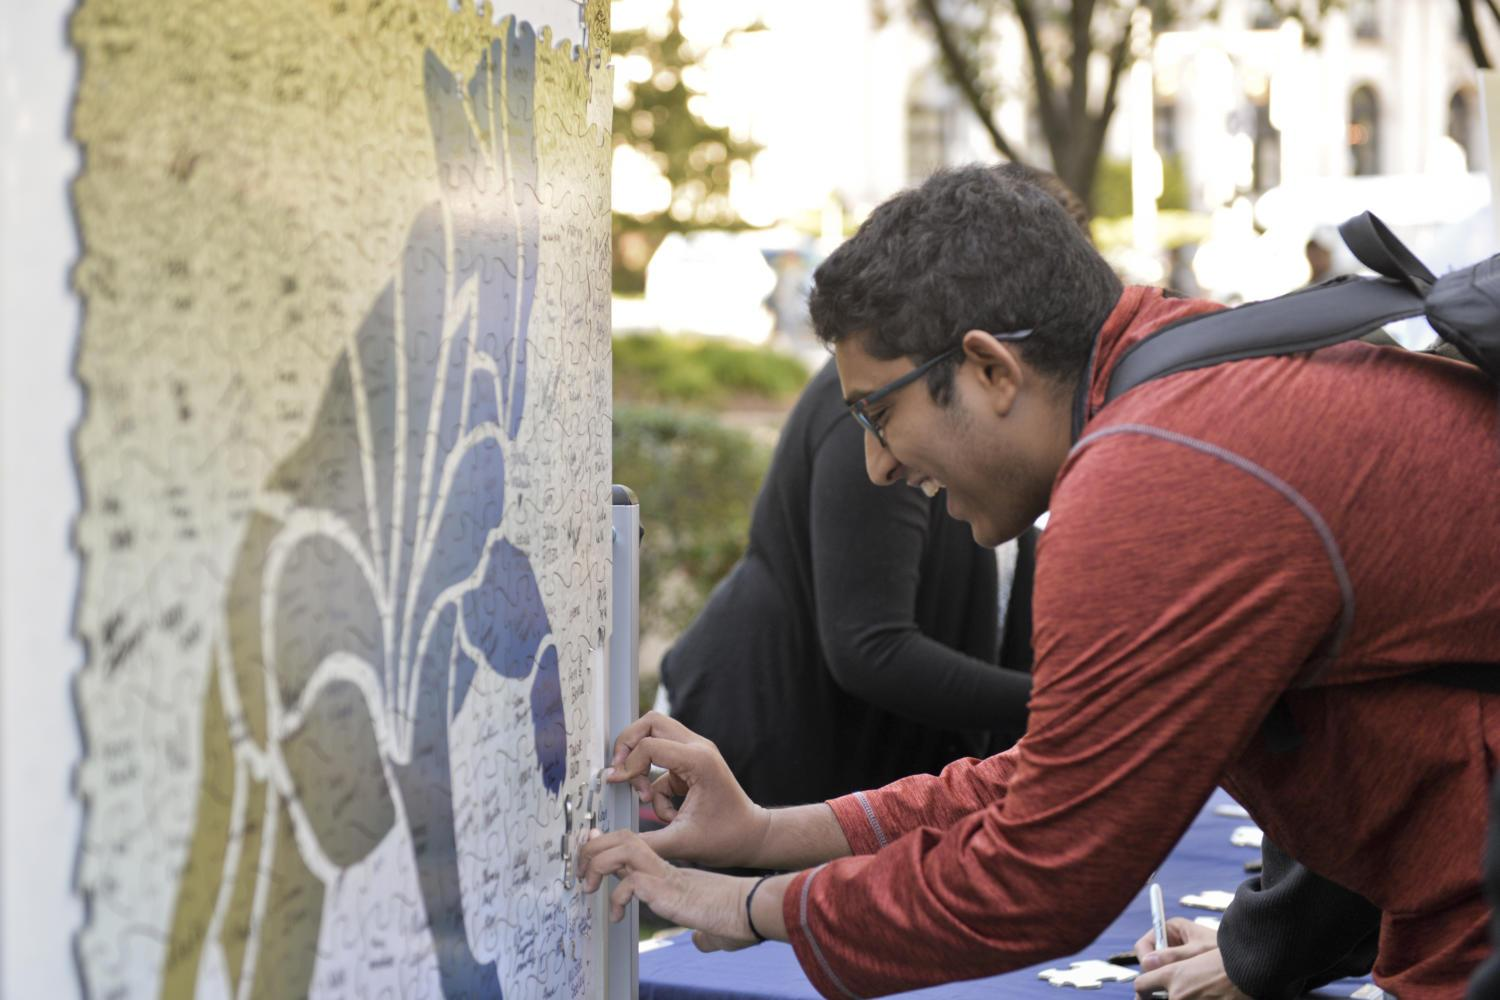 A student adds his name to a panther mosaic at a Year of Diversity event in October 2016. (Photo by Kyleen Considine | Senior Staff Photographer)